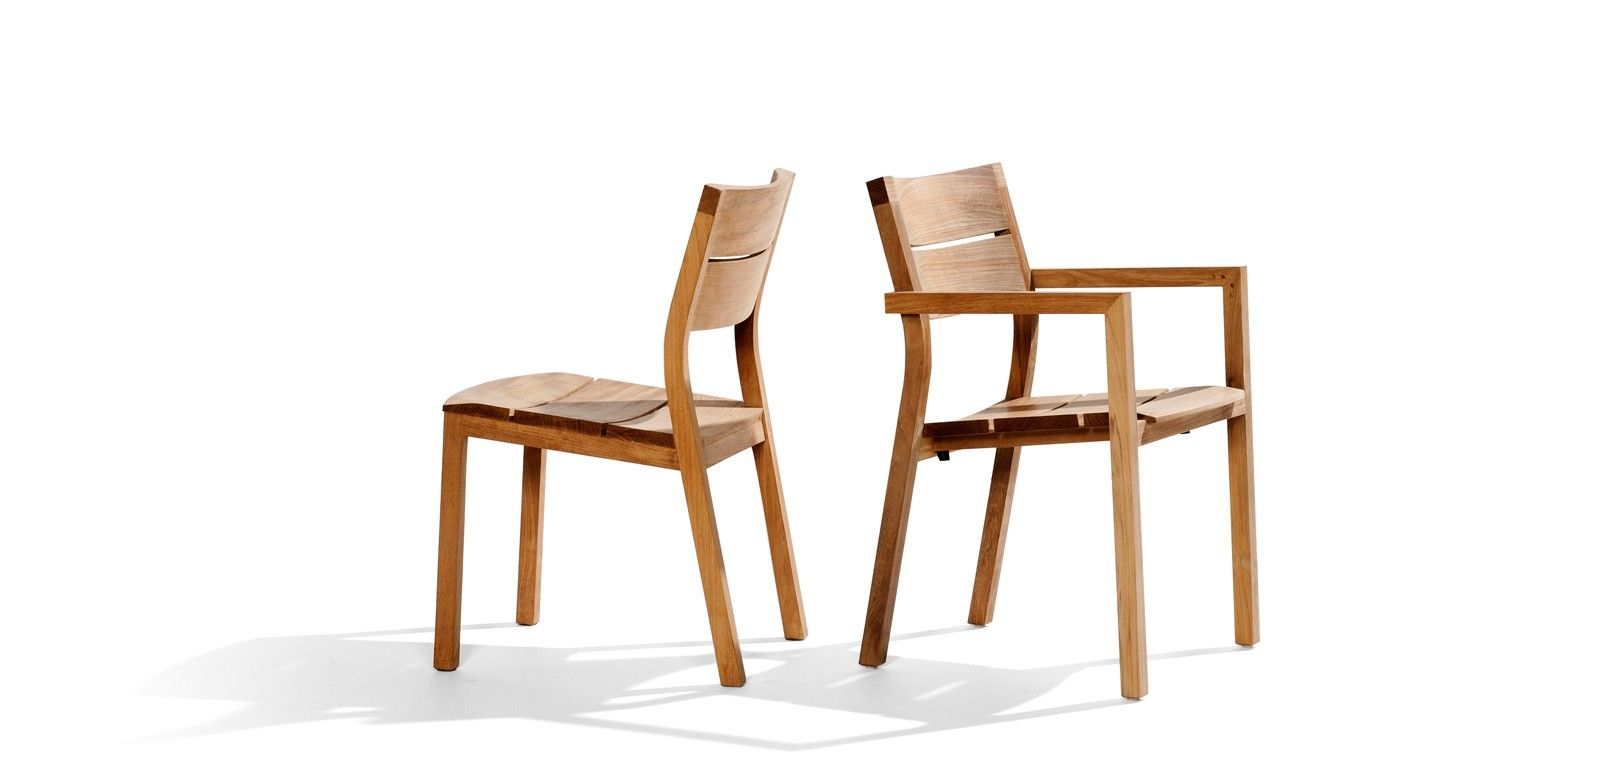 Tribu Chairs Outdoor Chairs Chair Teak